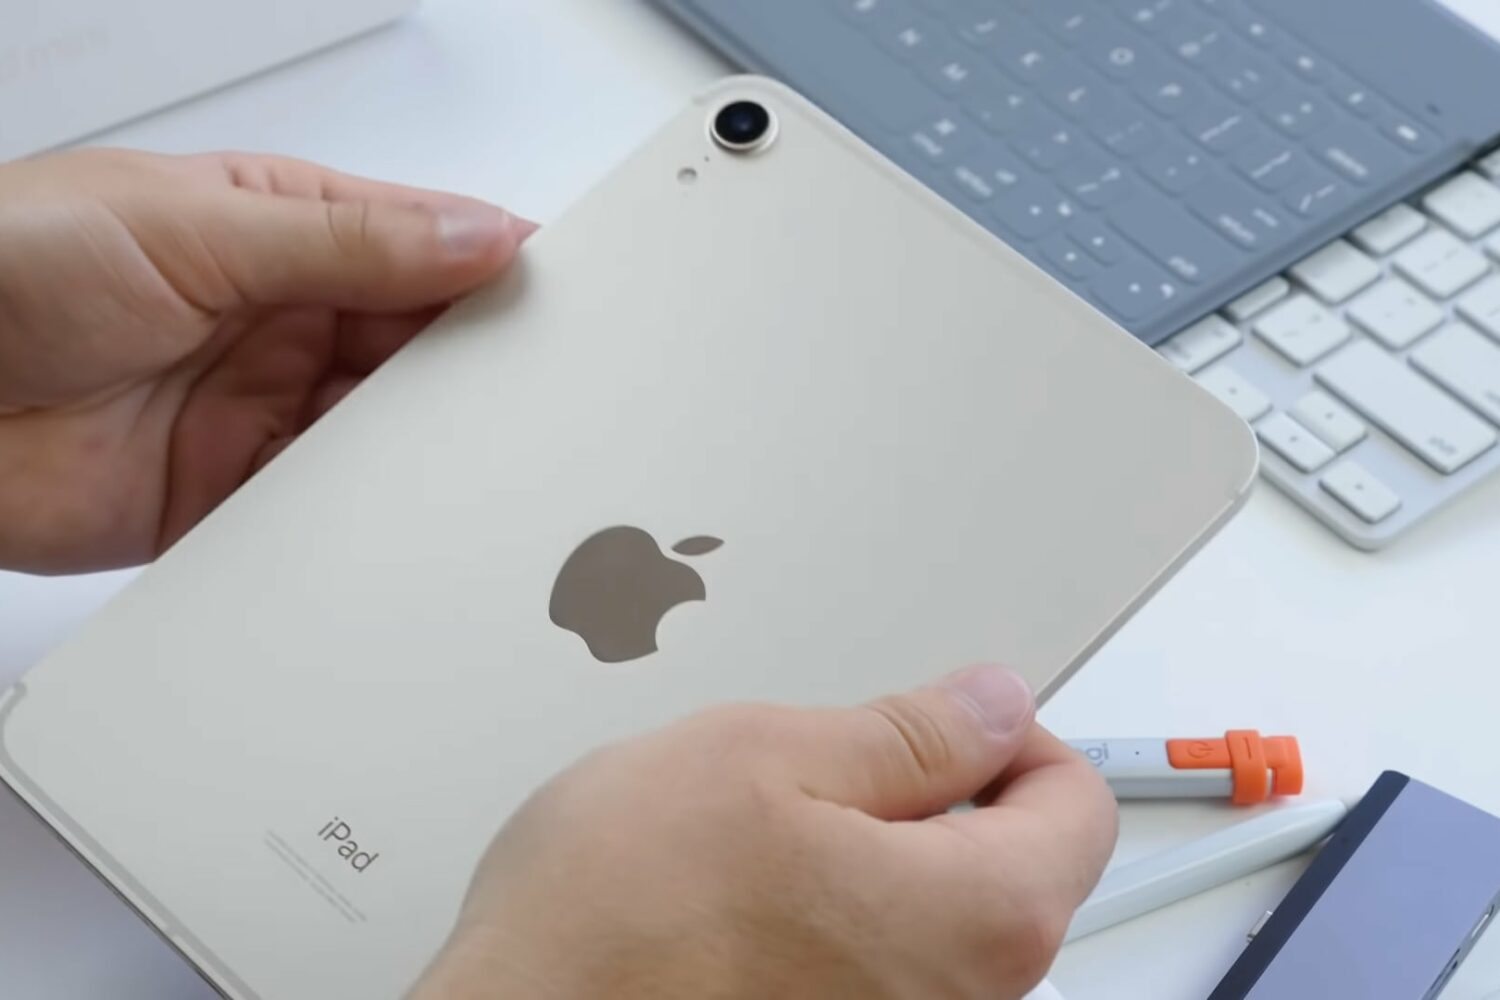 A photo showing a young male's two hands holding iPad mini 6 in Apple's Starlight color to show the tablet's back along with the Apple logo to the viewer